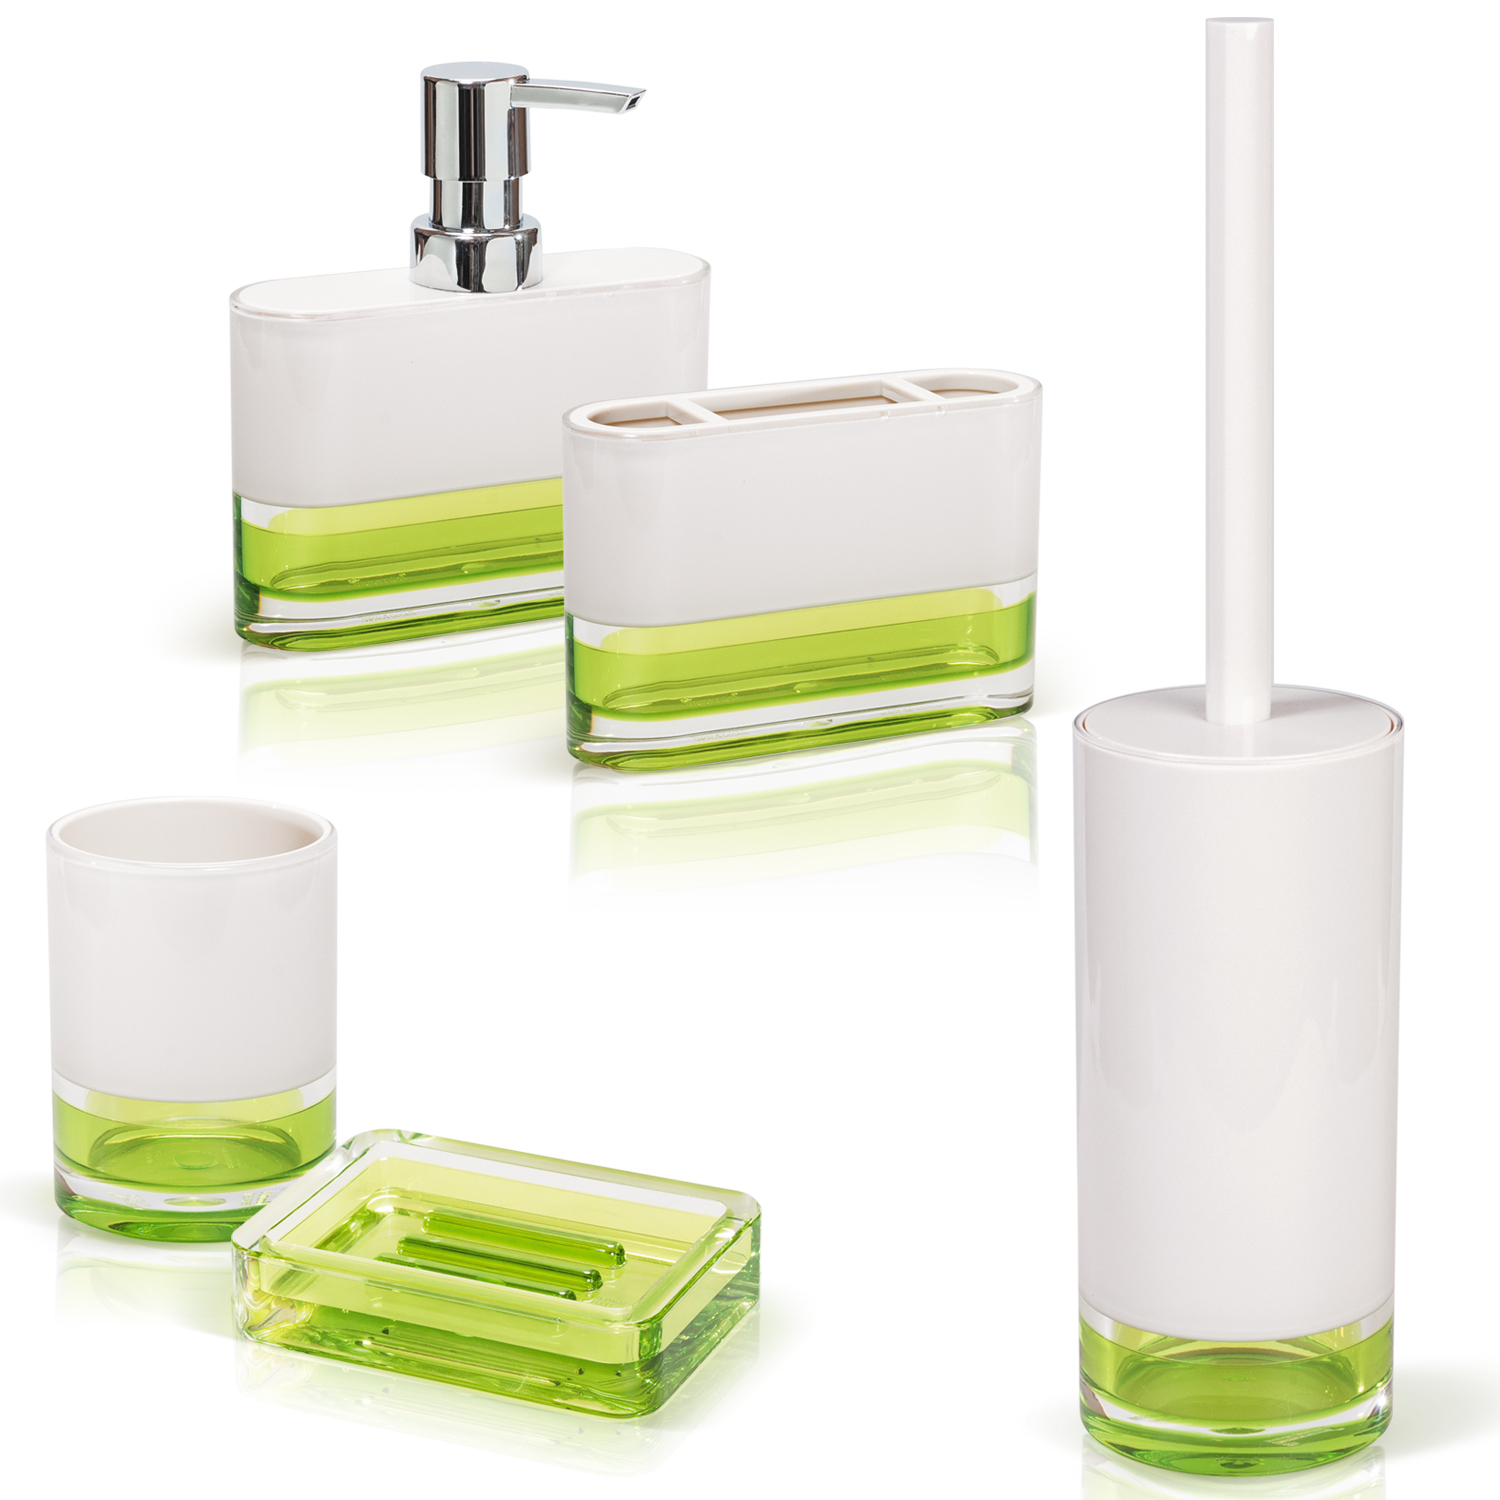 Tatkraft Topaz Green Bathroom Accessories Set Of 5 Soap Dish Bath